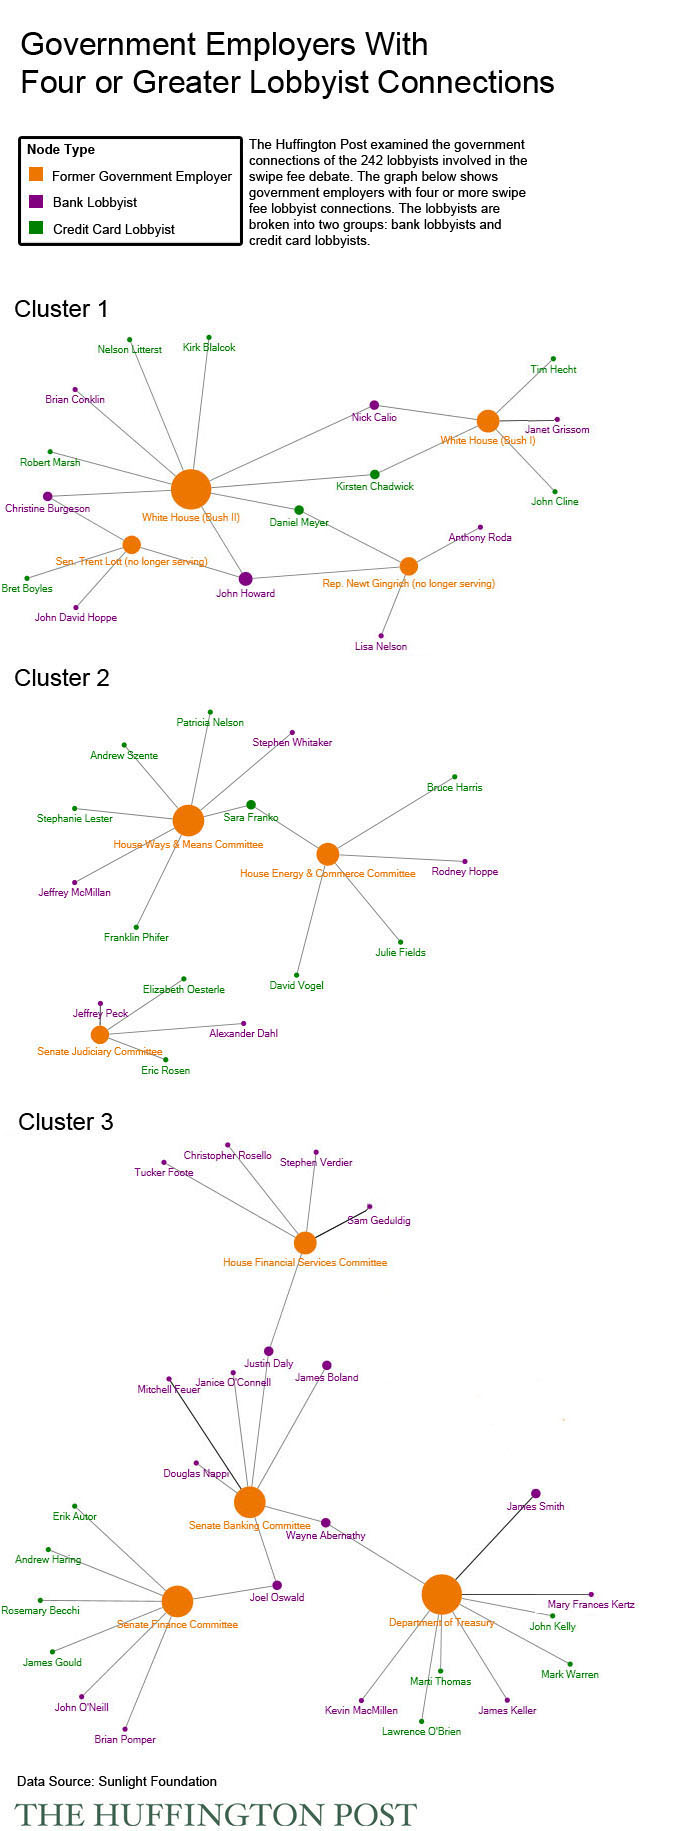 Network Graph of Government Employers with Four or Greater Lobbyist Connections